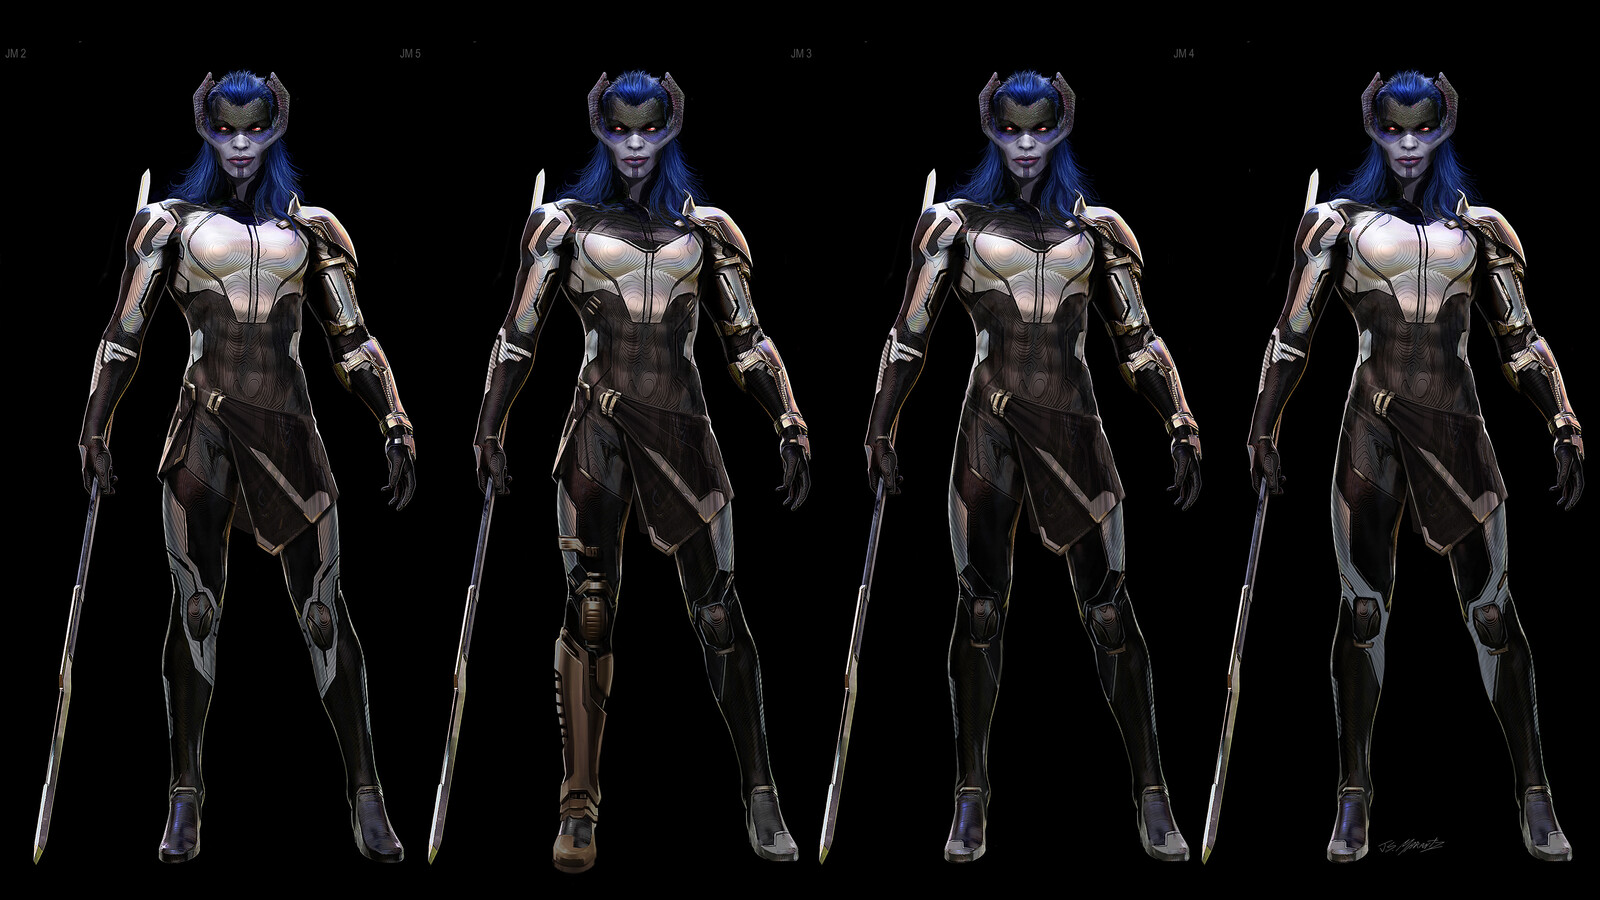 Proxima Midnight Designs: Avengers Infinity War